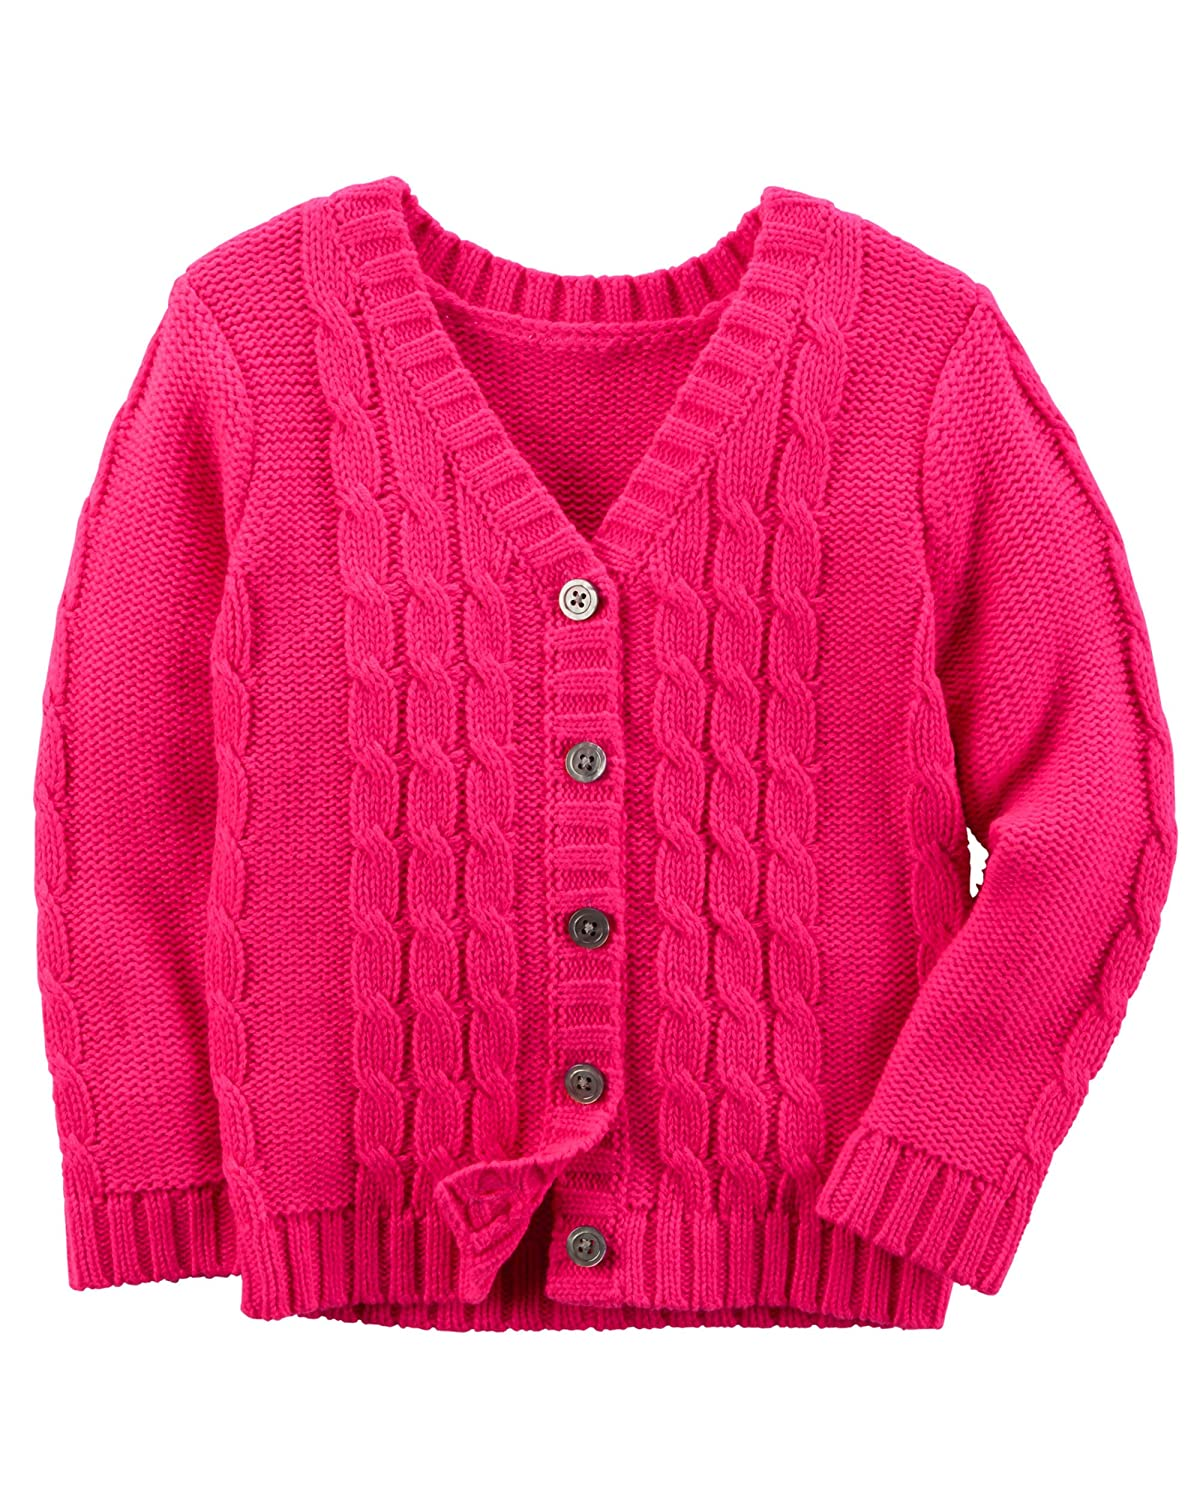 enjoy complimentary shipping Good Prices choose best Amazon.com: Carter's Girl's Hot Pink V Neck Knit Button ...